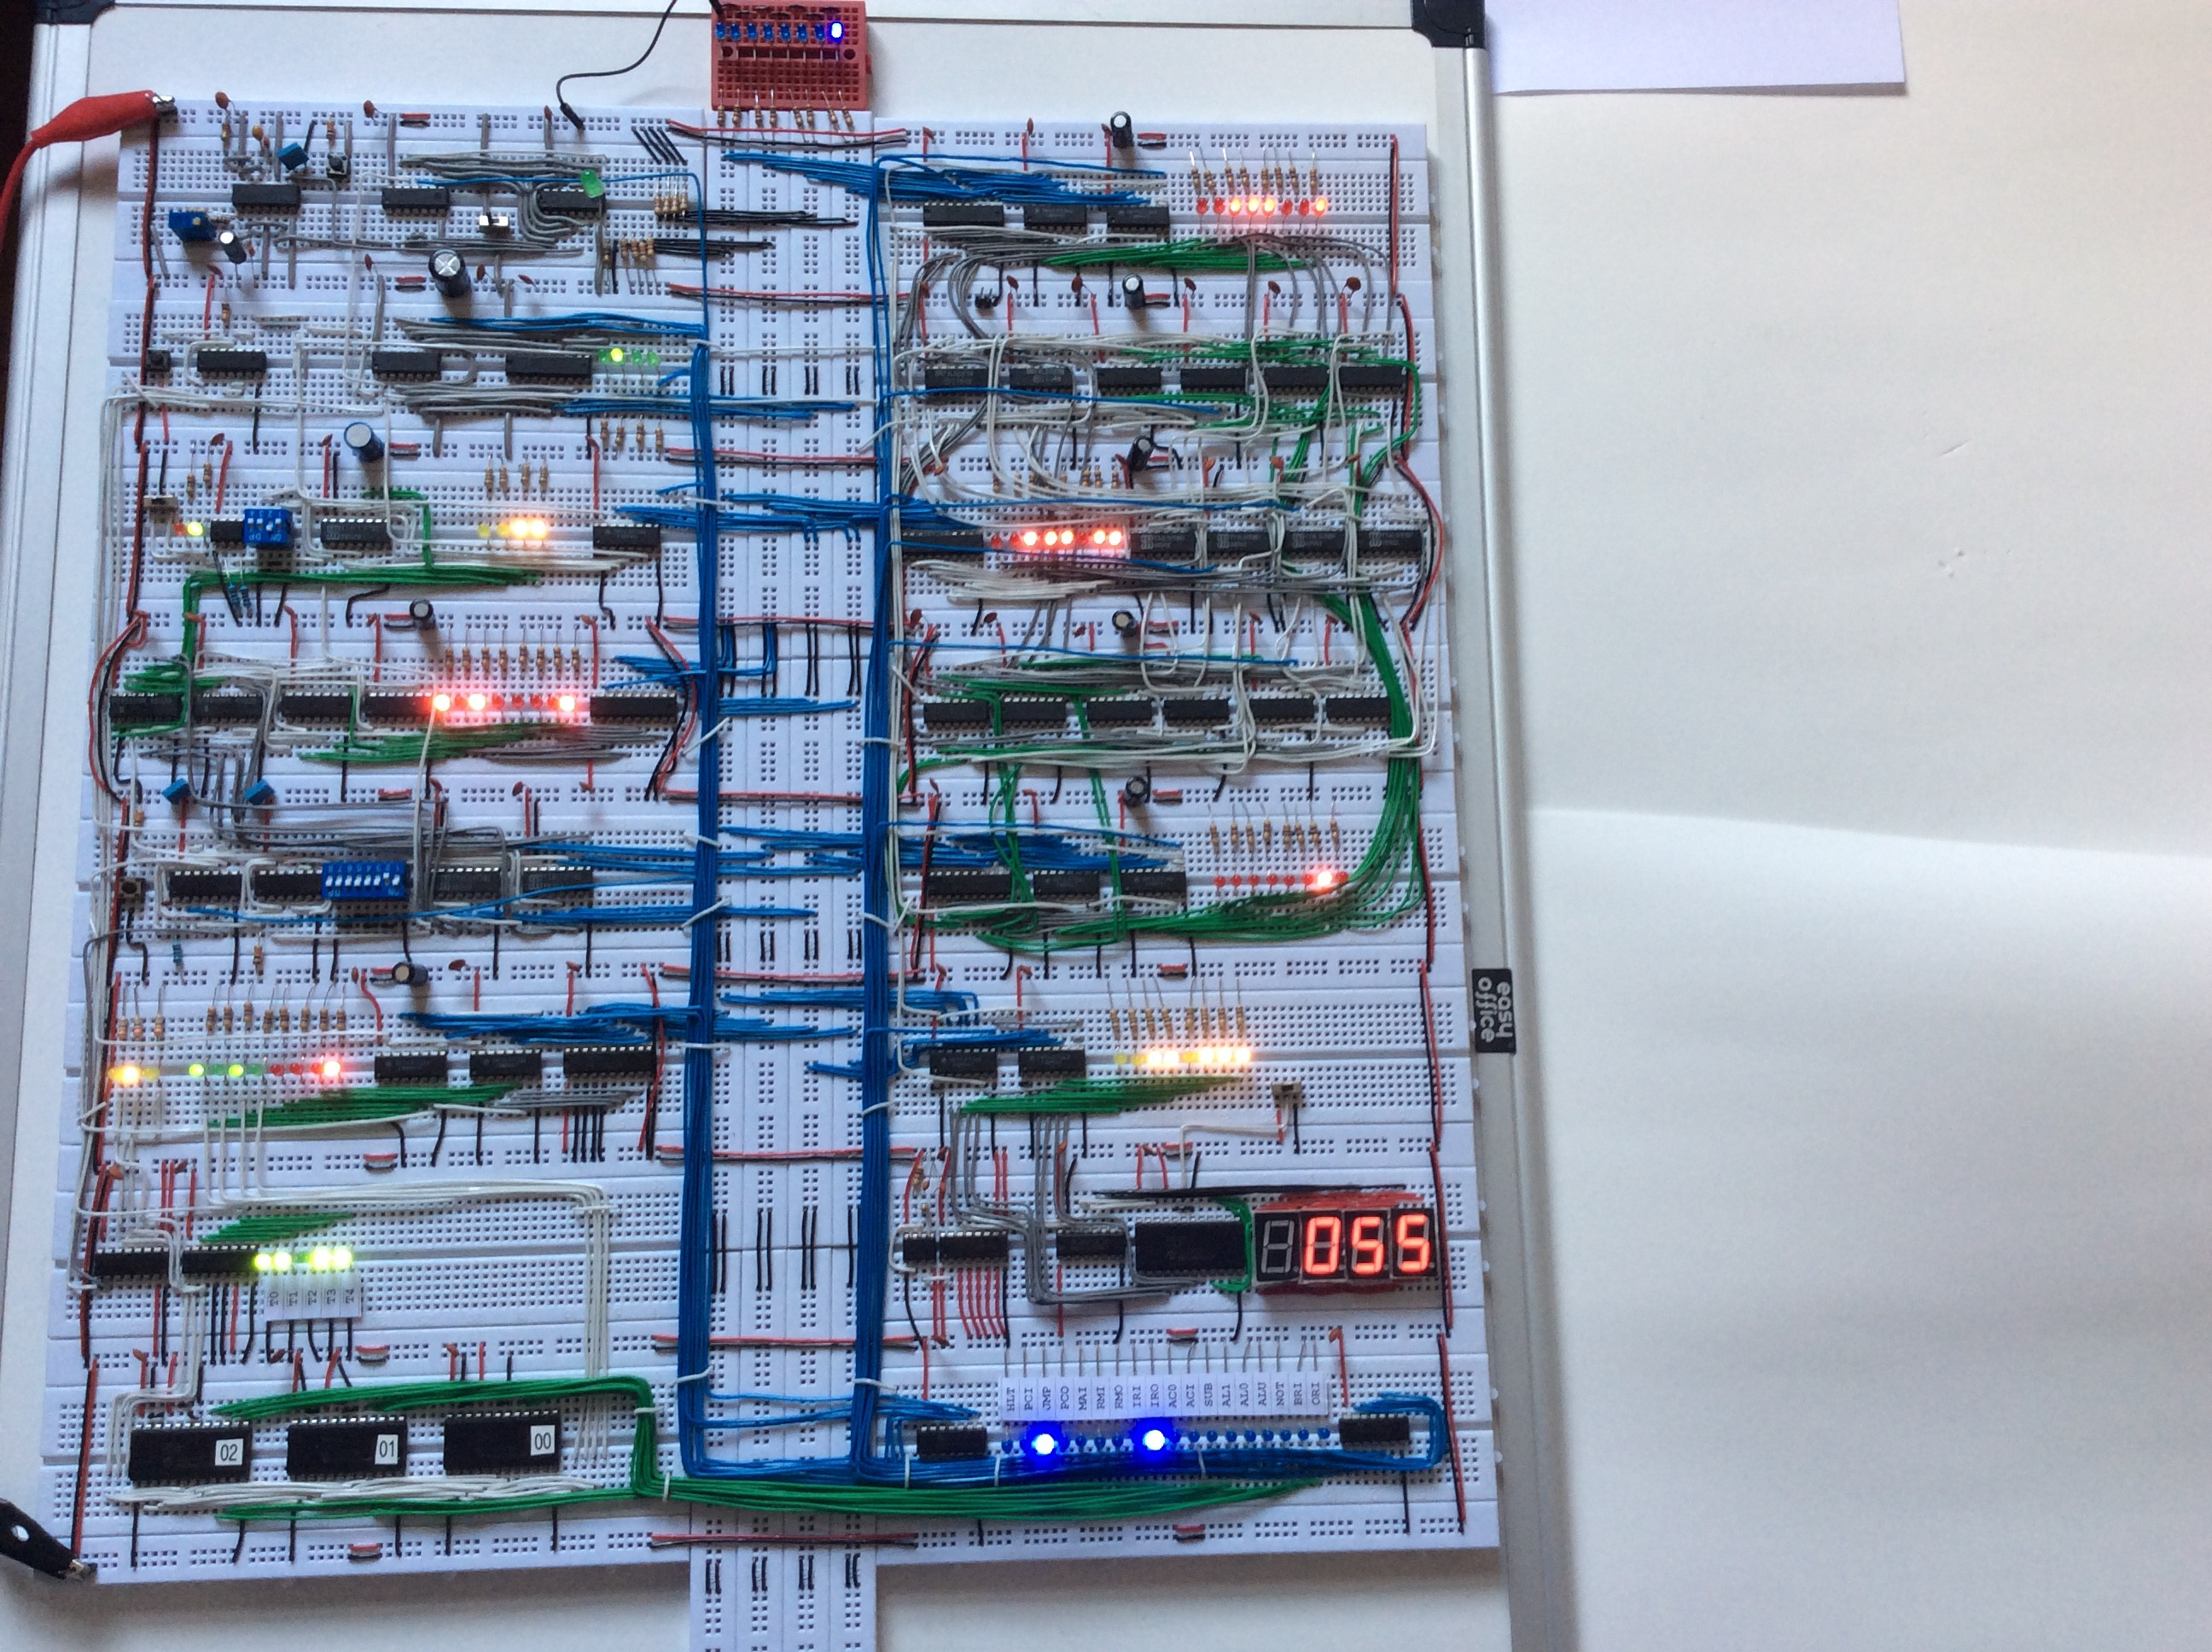 8 Bit Computer Build Juragansynopsis Electronics 7segment Led Clock Page 4 Bittechnet Forums An Gallery Back To Project View Full Size